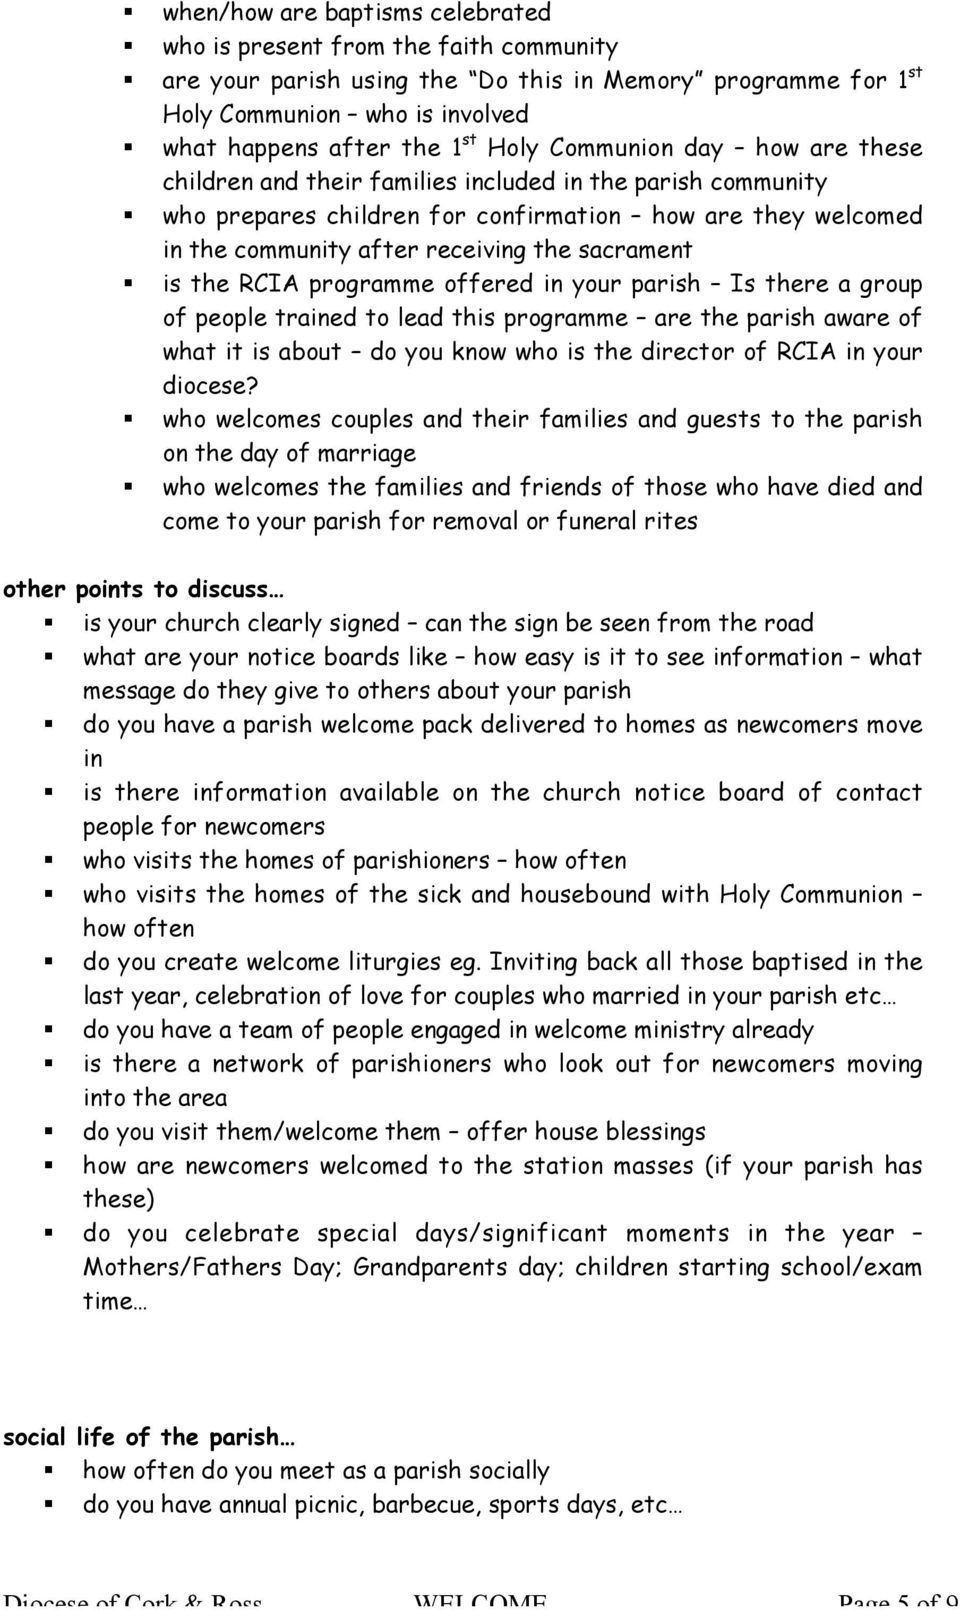 the RCIA programme offered in your parish Is there a group of people trained to lead this programme are the parish aware of what it is about do you know who is the director of RCIA in your diocese?